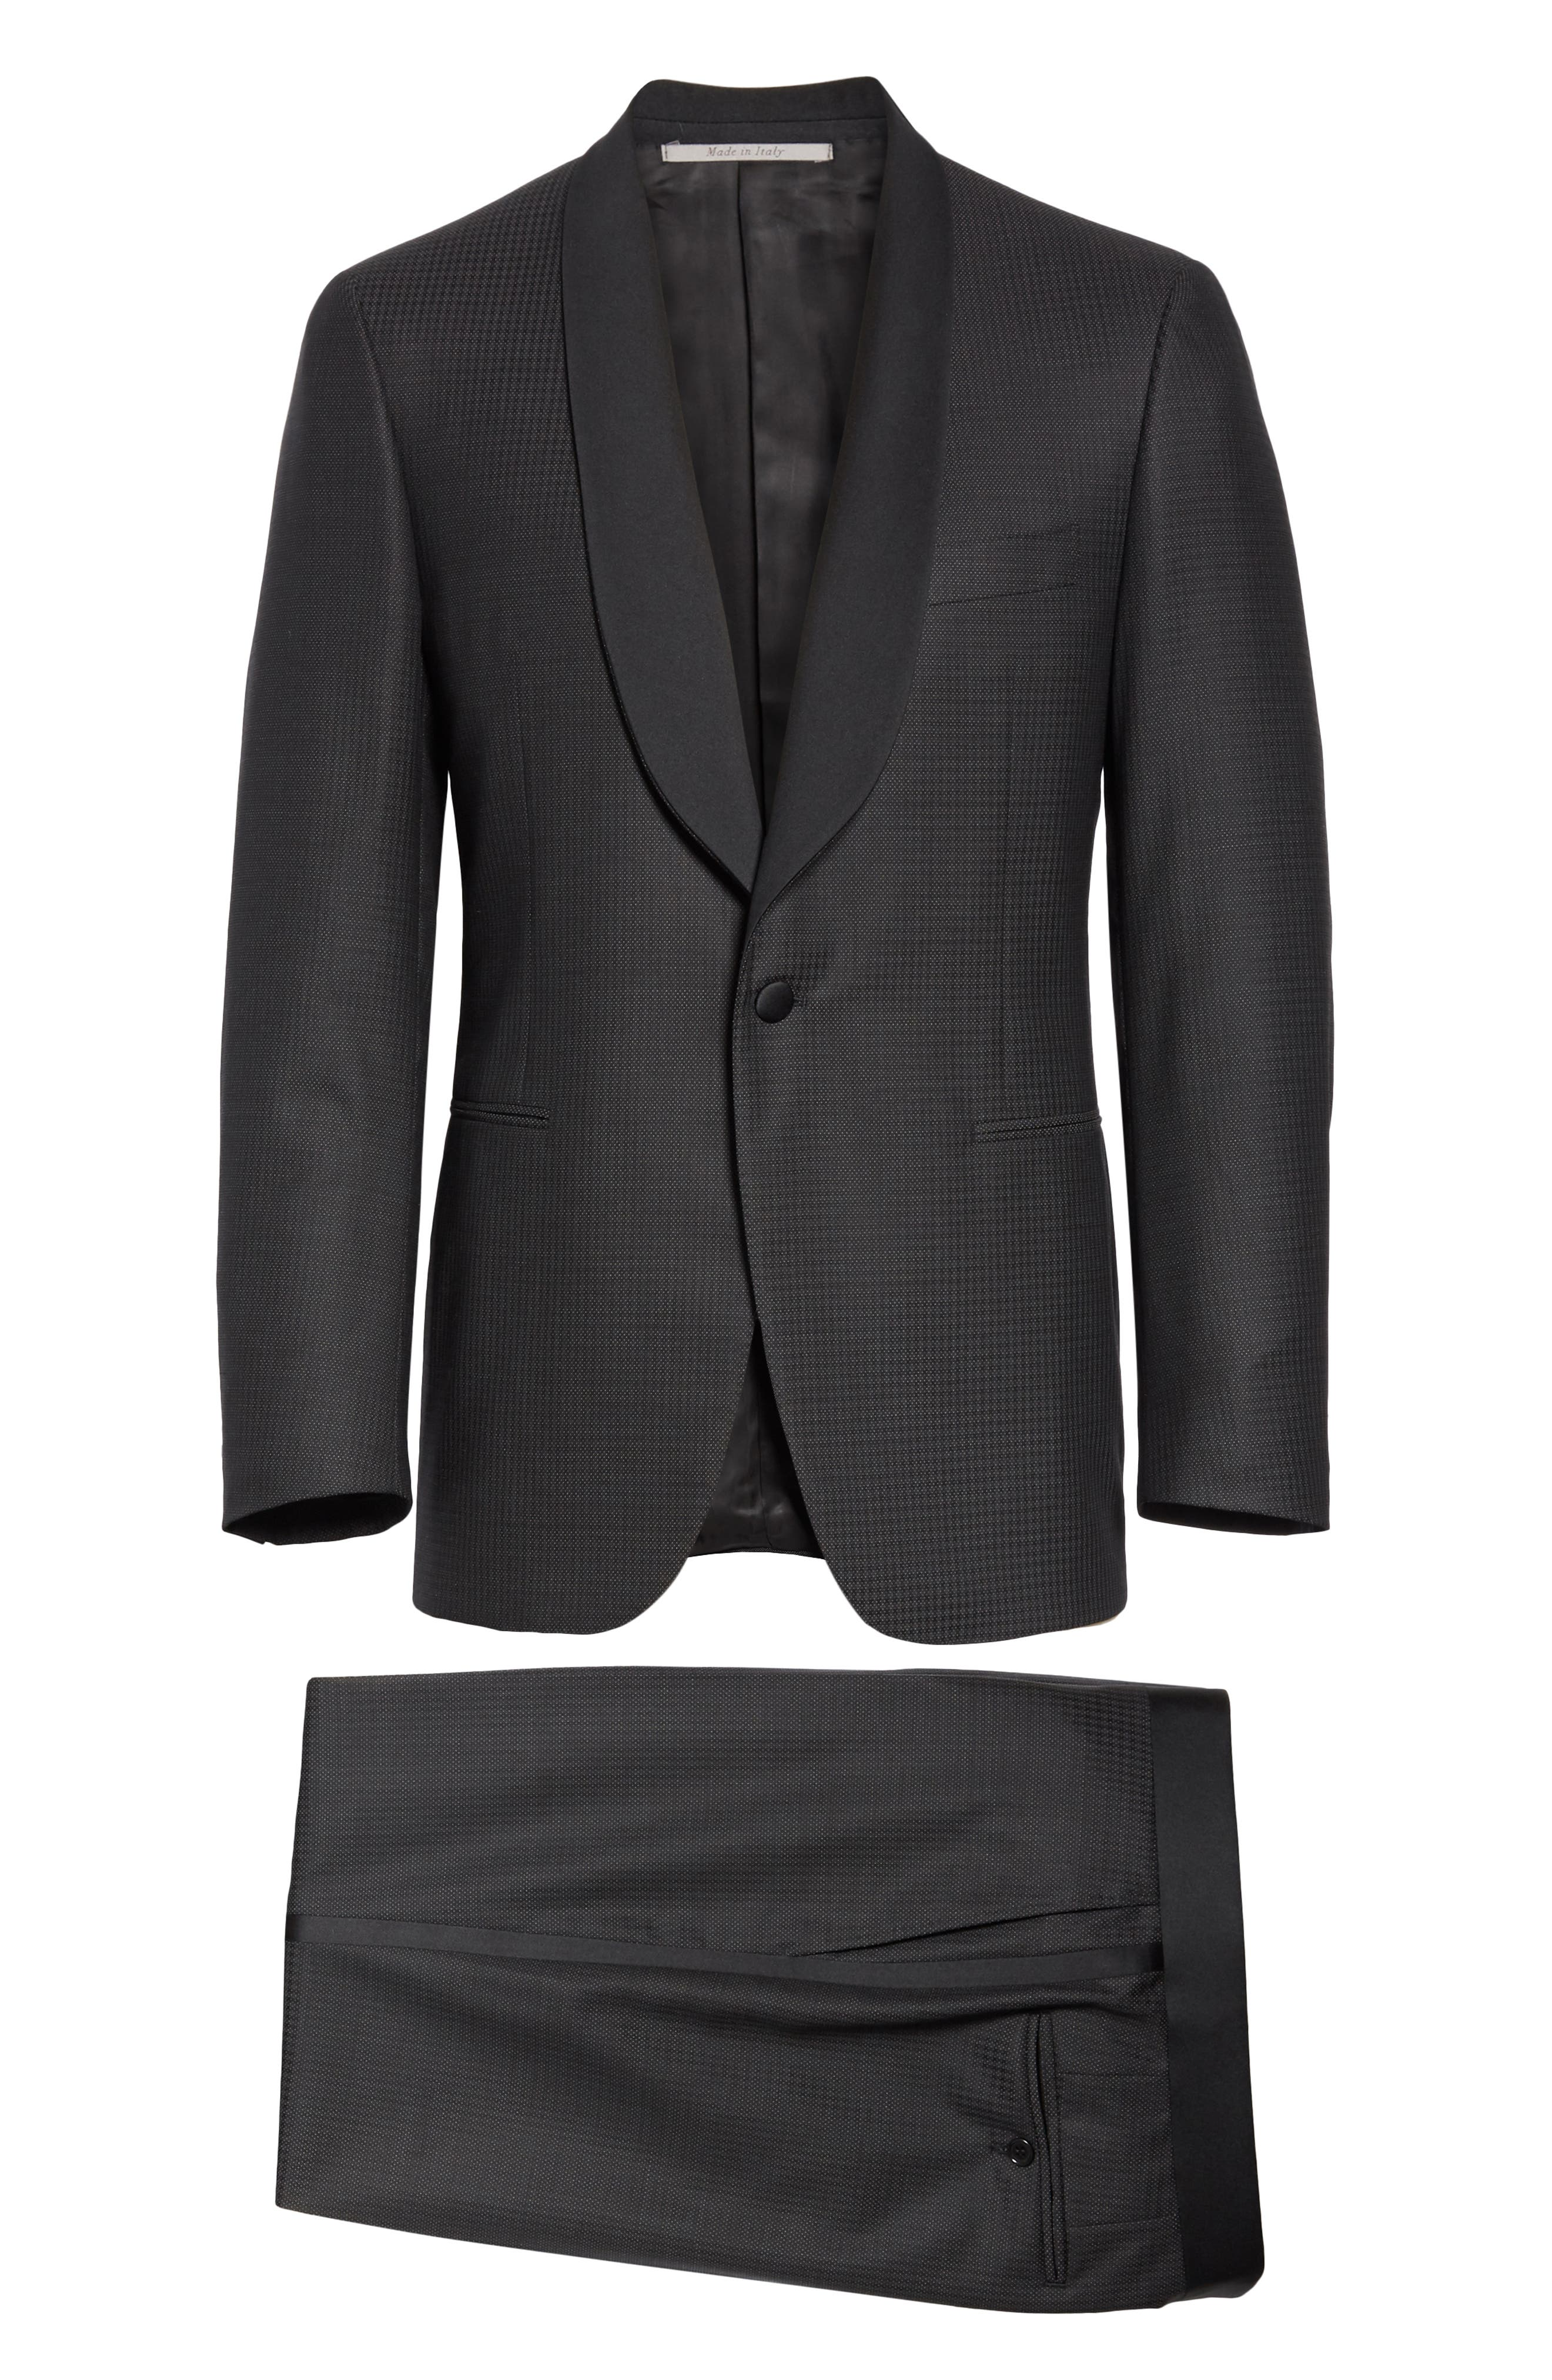 Classic Fit Wool Tuxedo,                             Alternate thumbnail 8, color,                             CHARCOAL